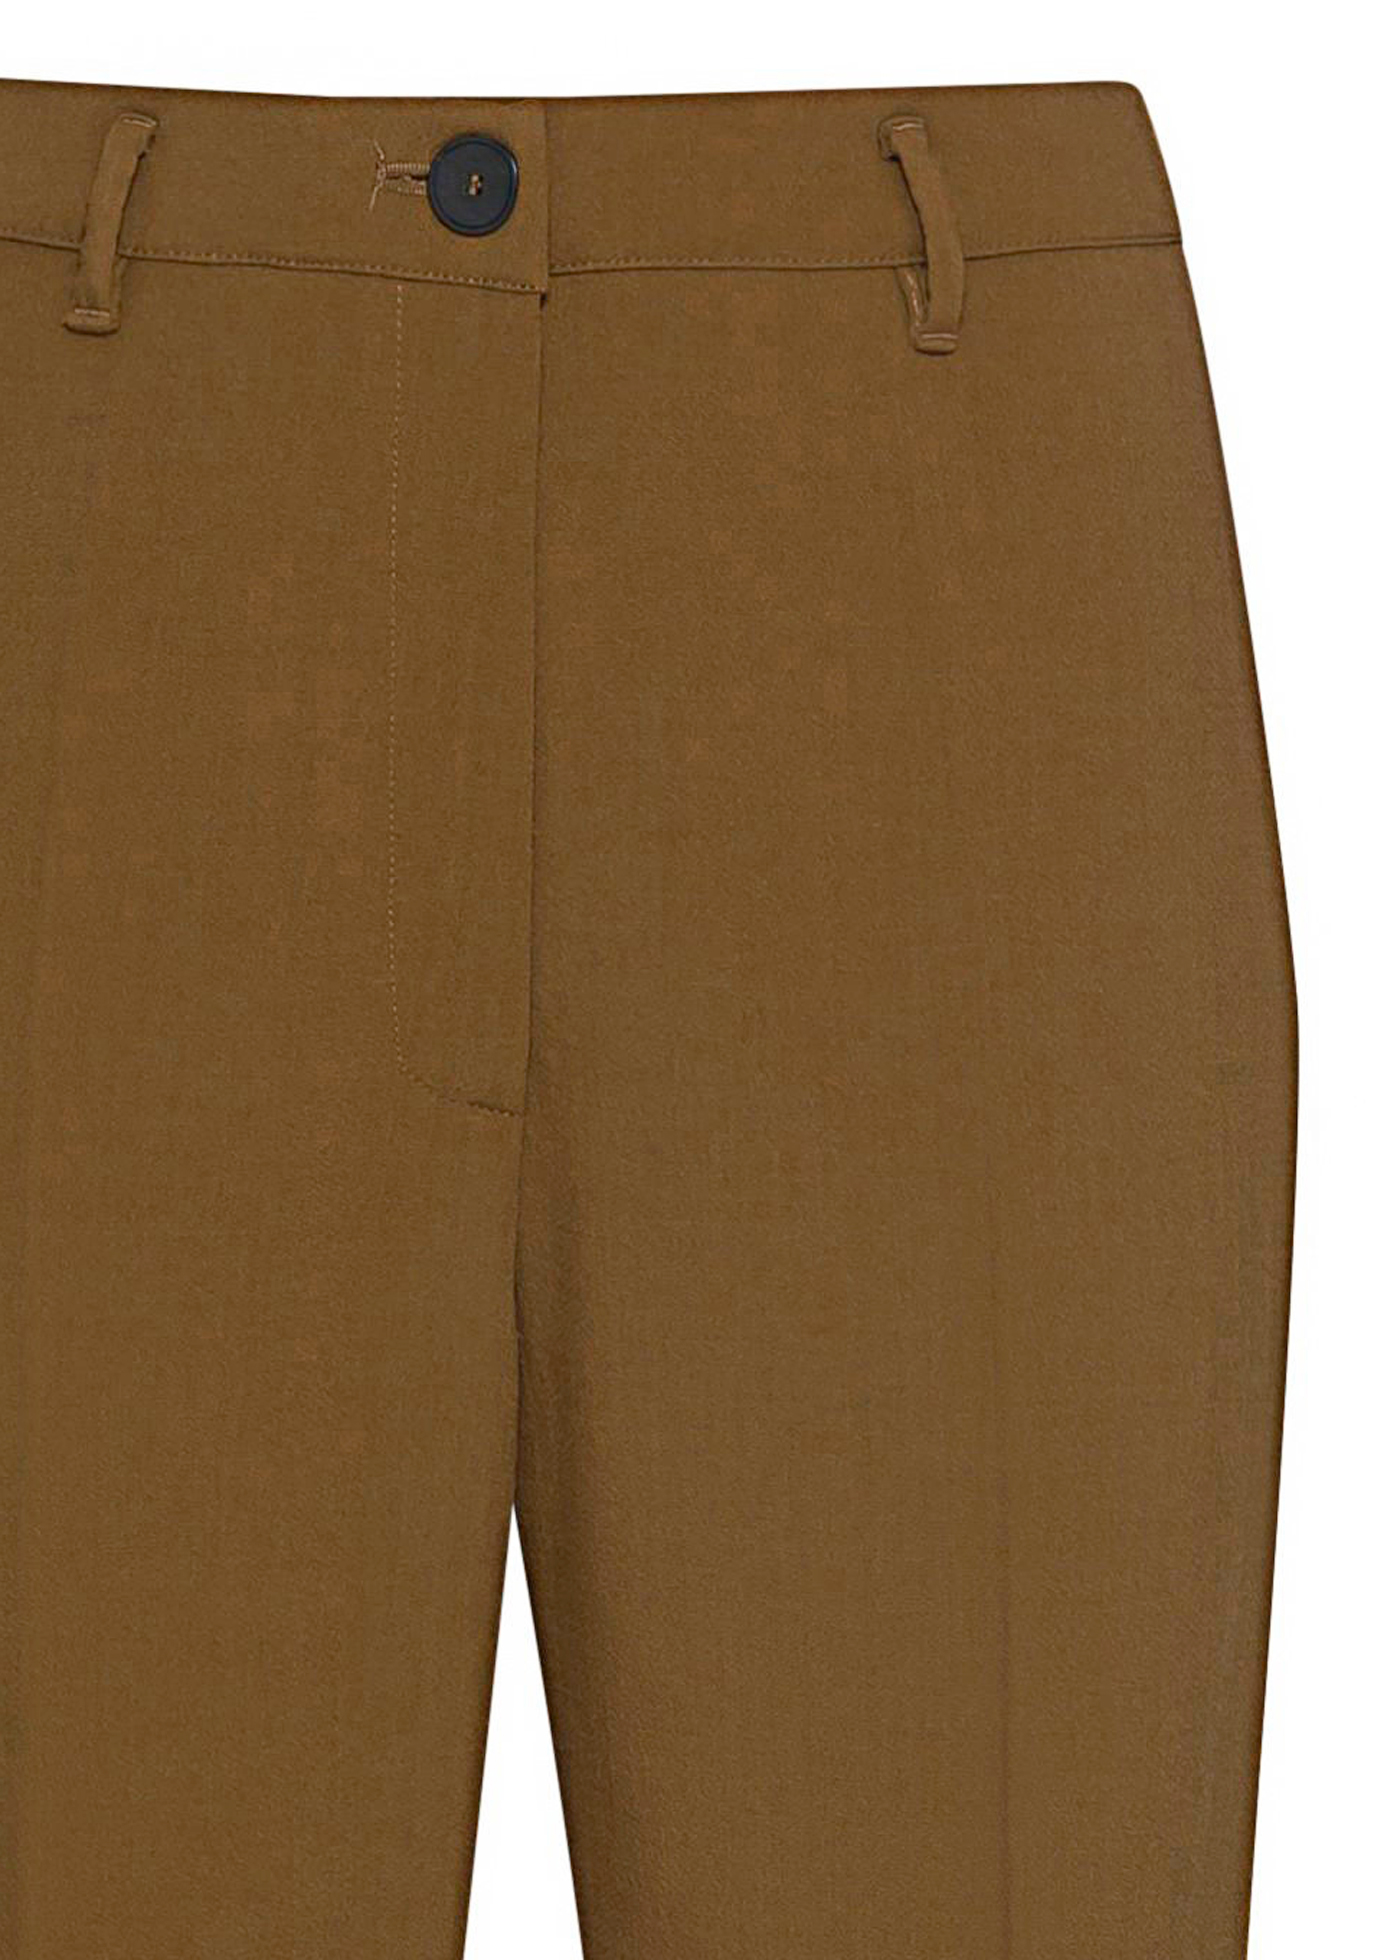 Pants image number 2